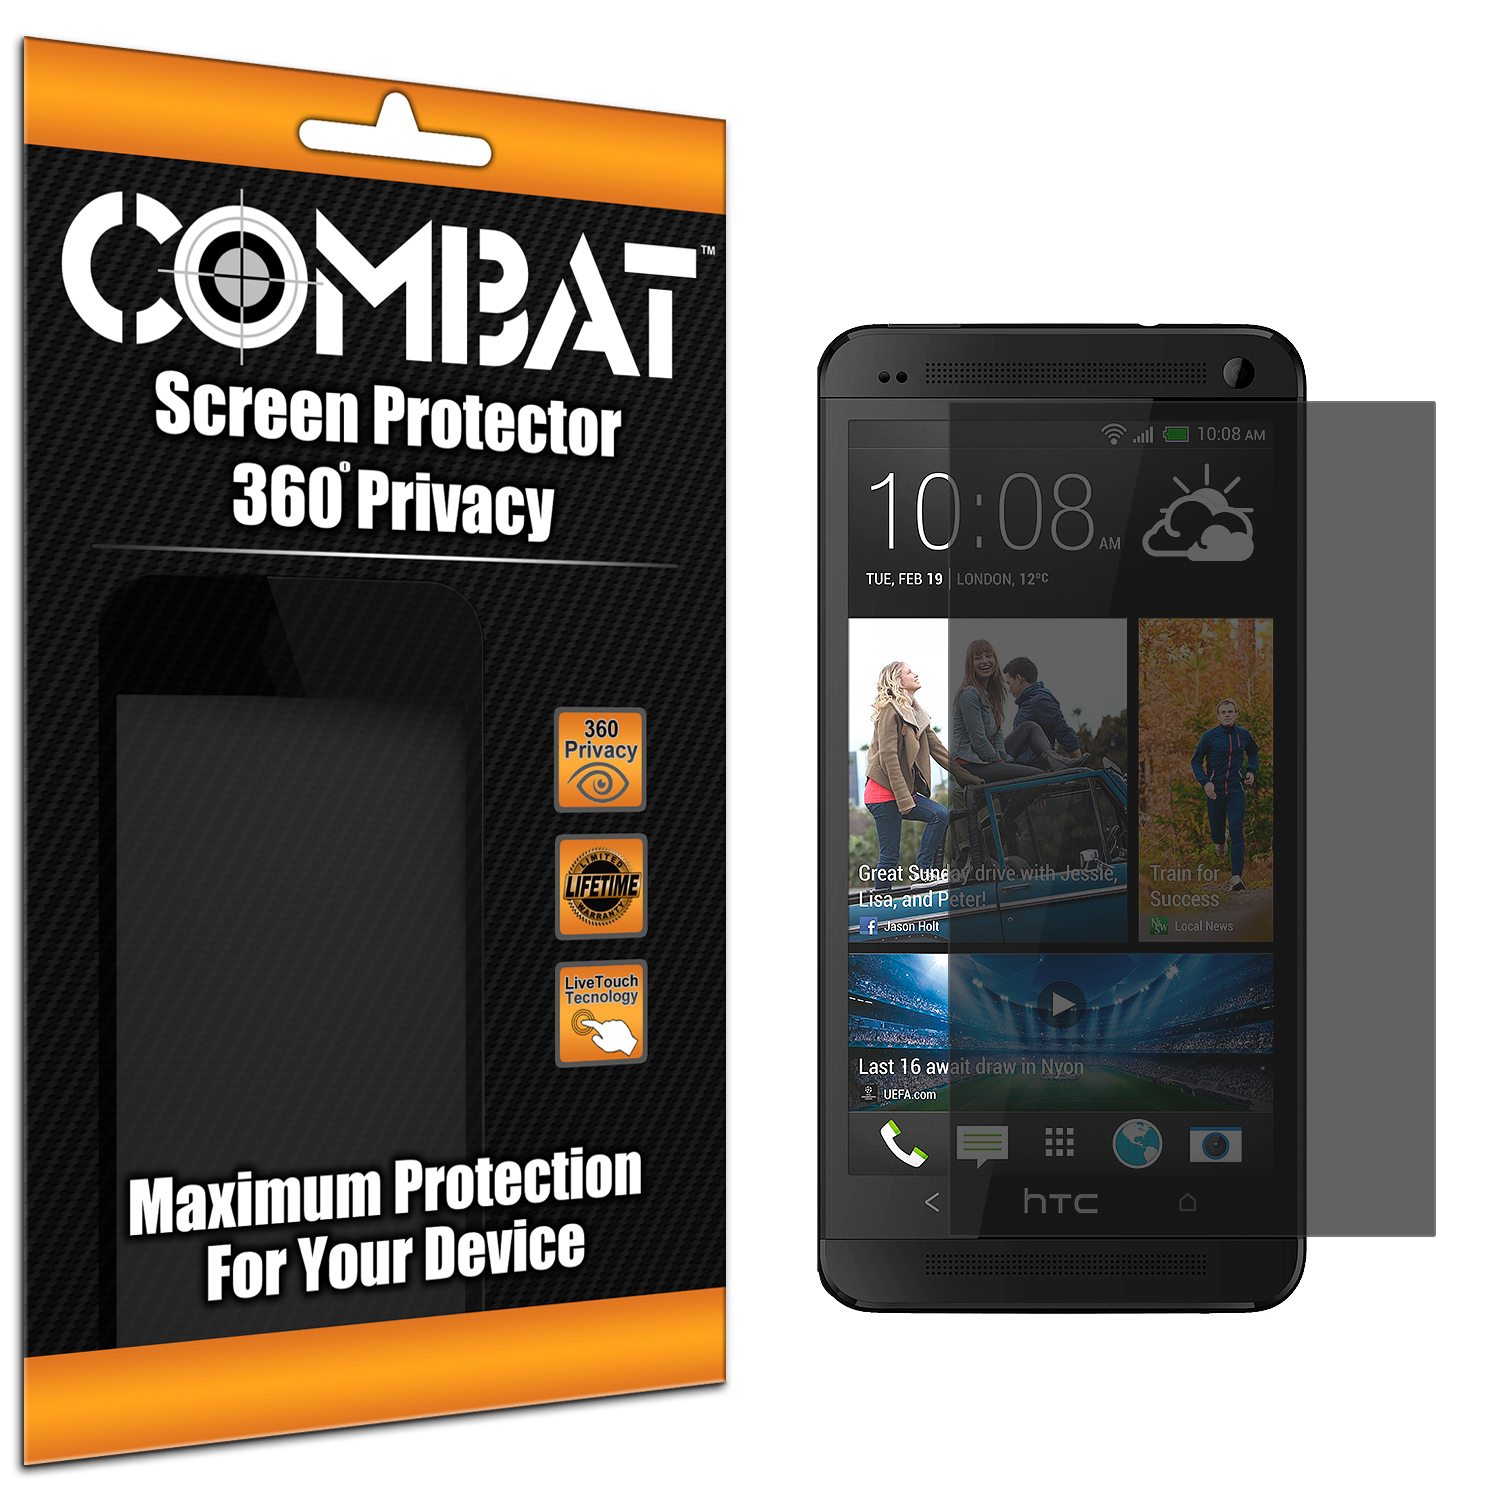 HTC One M7 Combat 360 4-Way Privacy Screen Protector